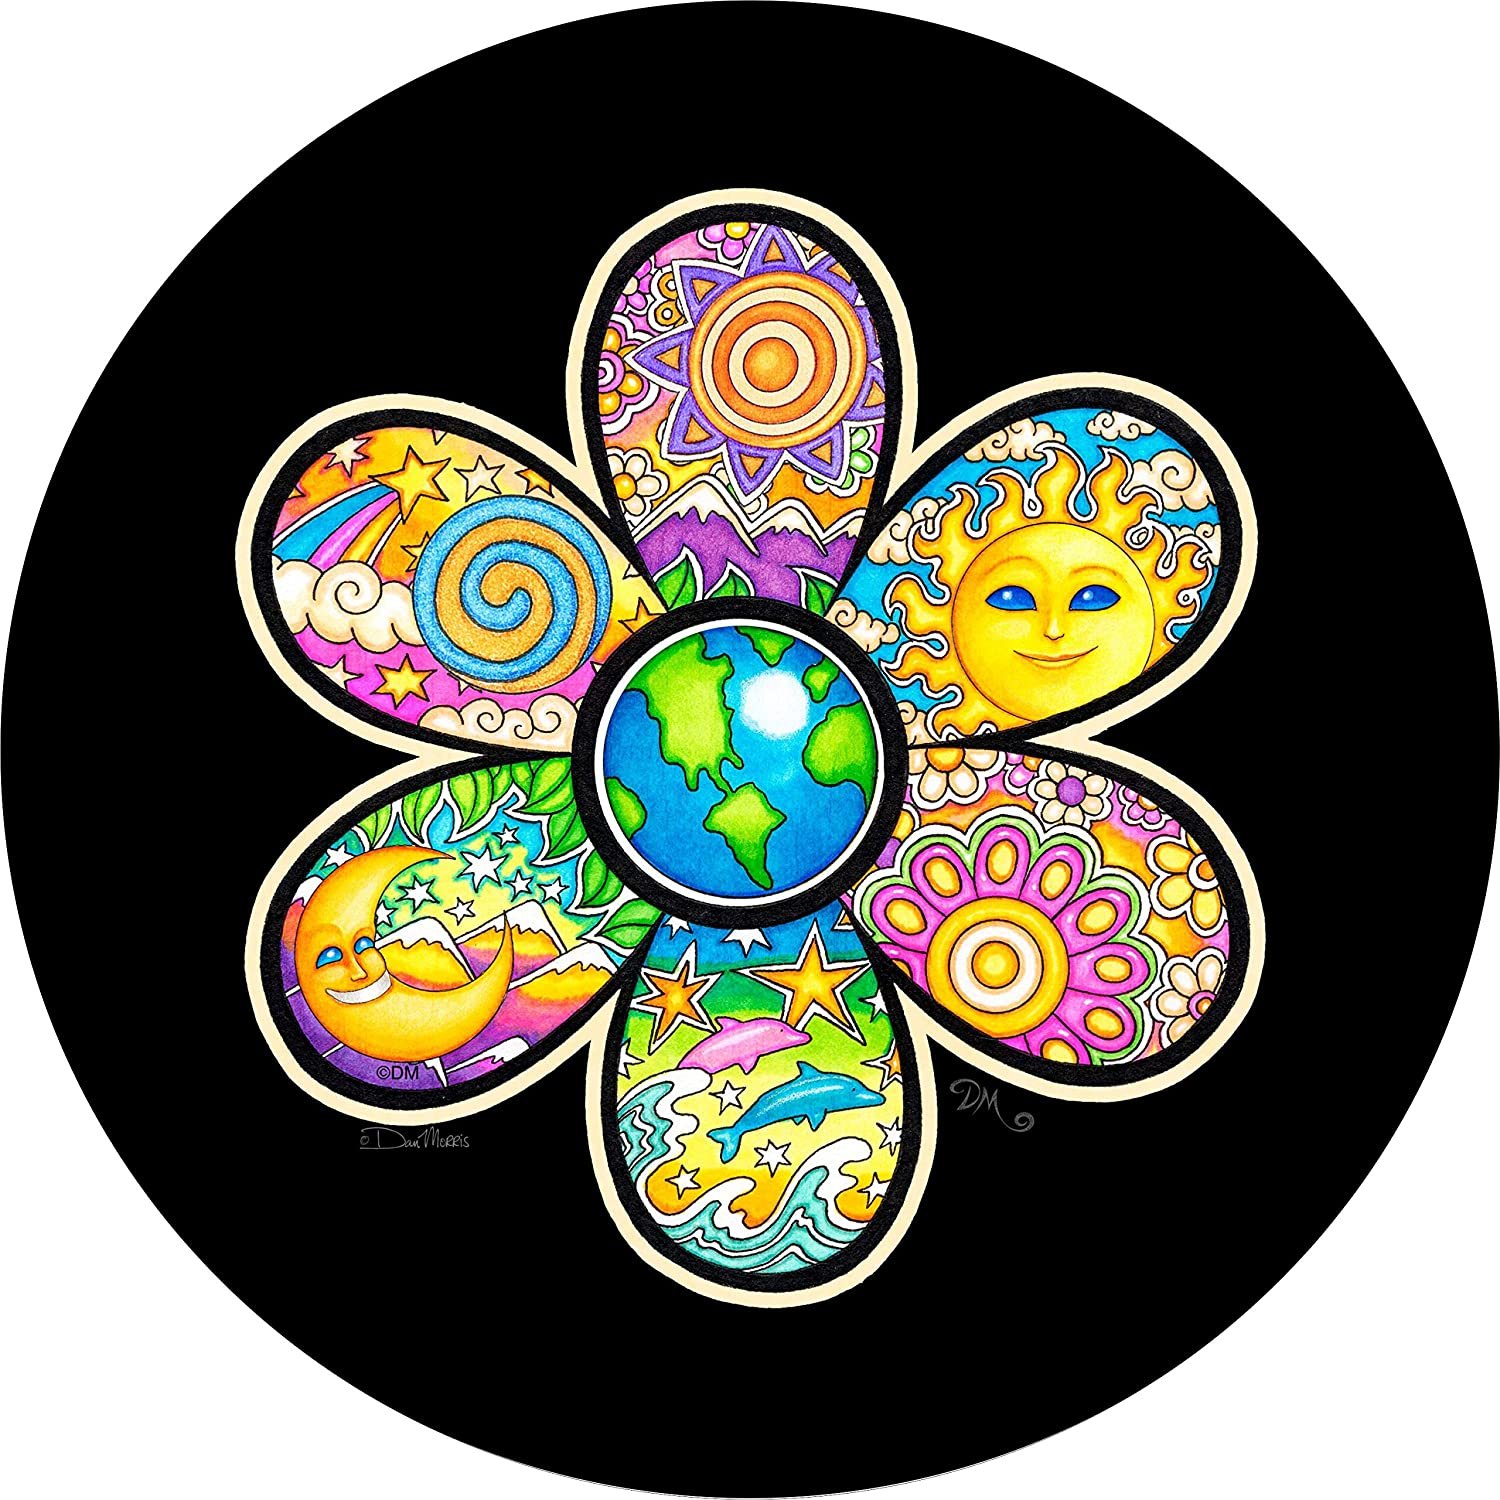 TIRE COVER CENTRAL Earth Flower Ranking TOP3 Cover Dolphin Tire Spare Baltimore Mall Select